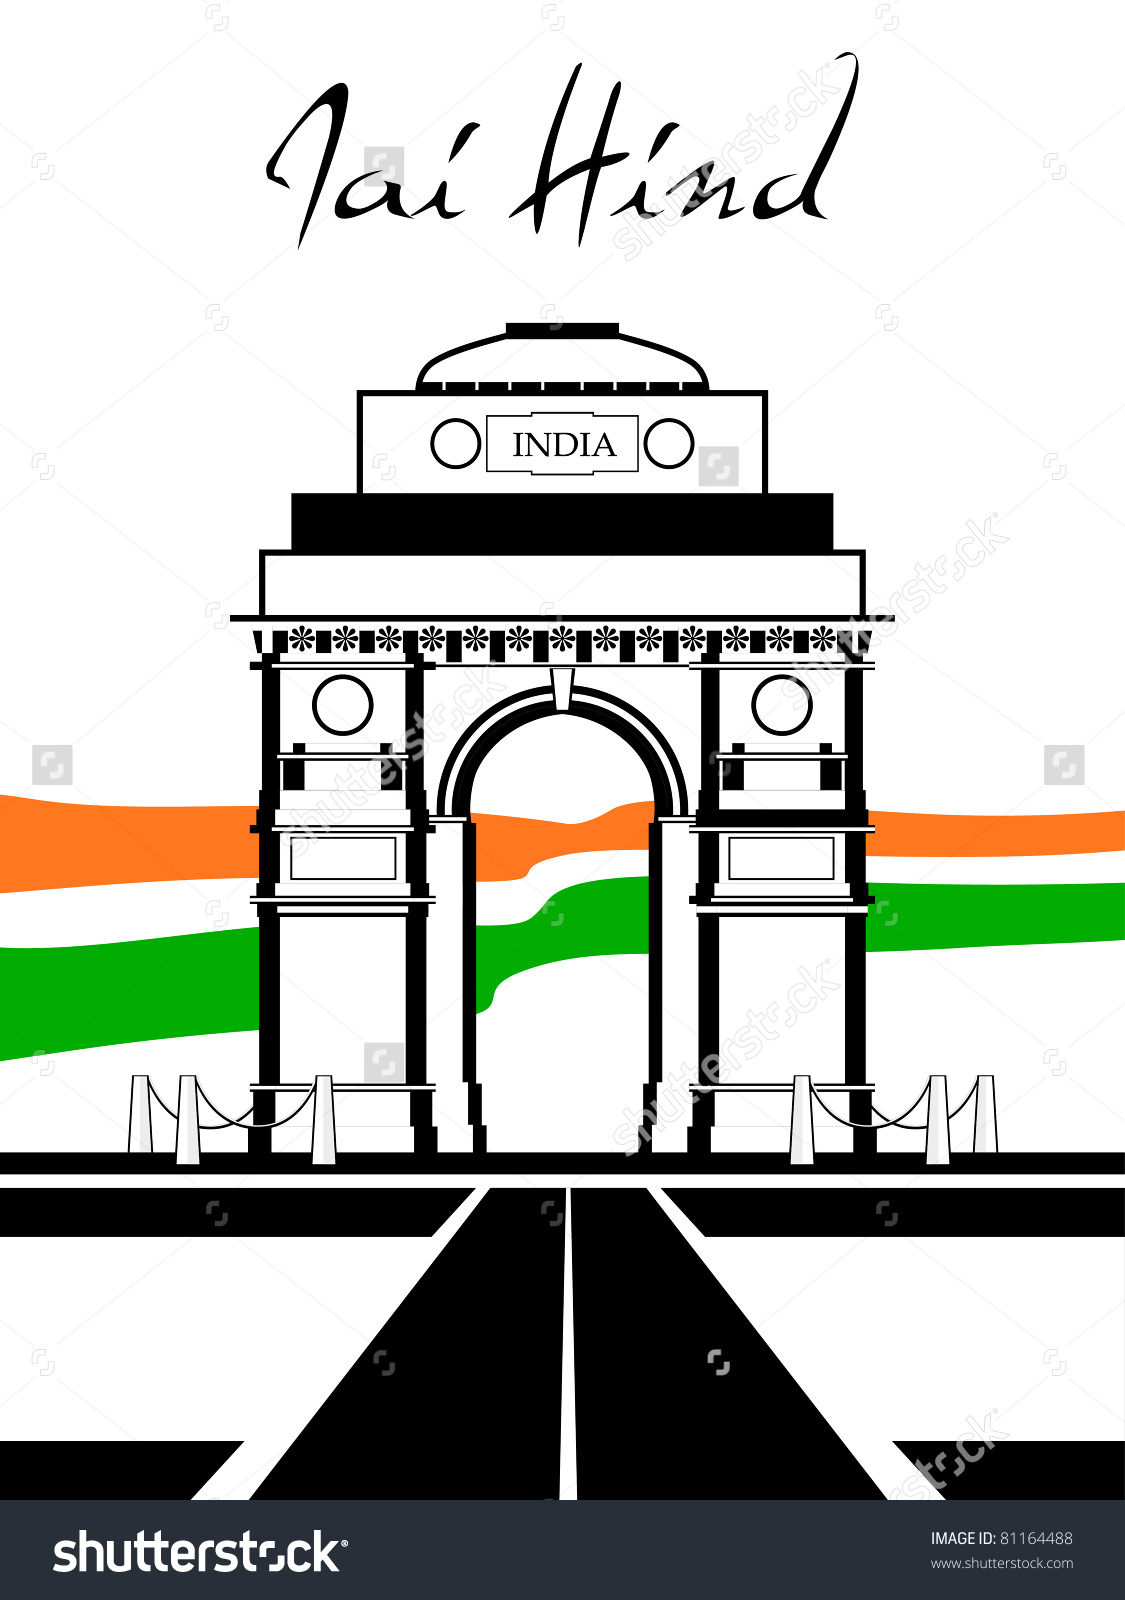 India gate clipart black and white.